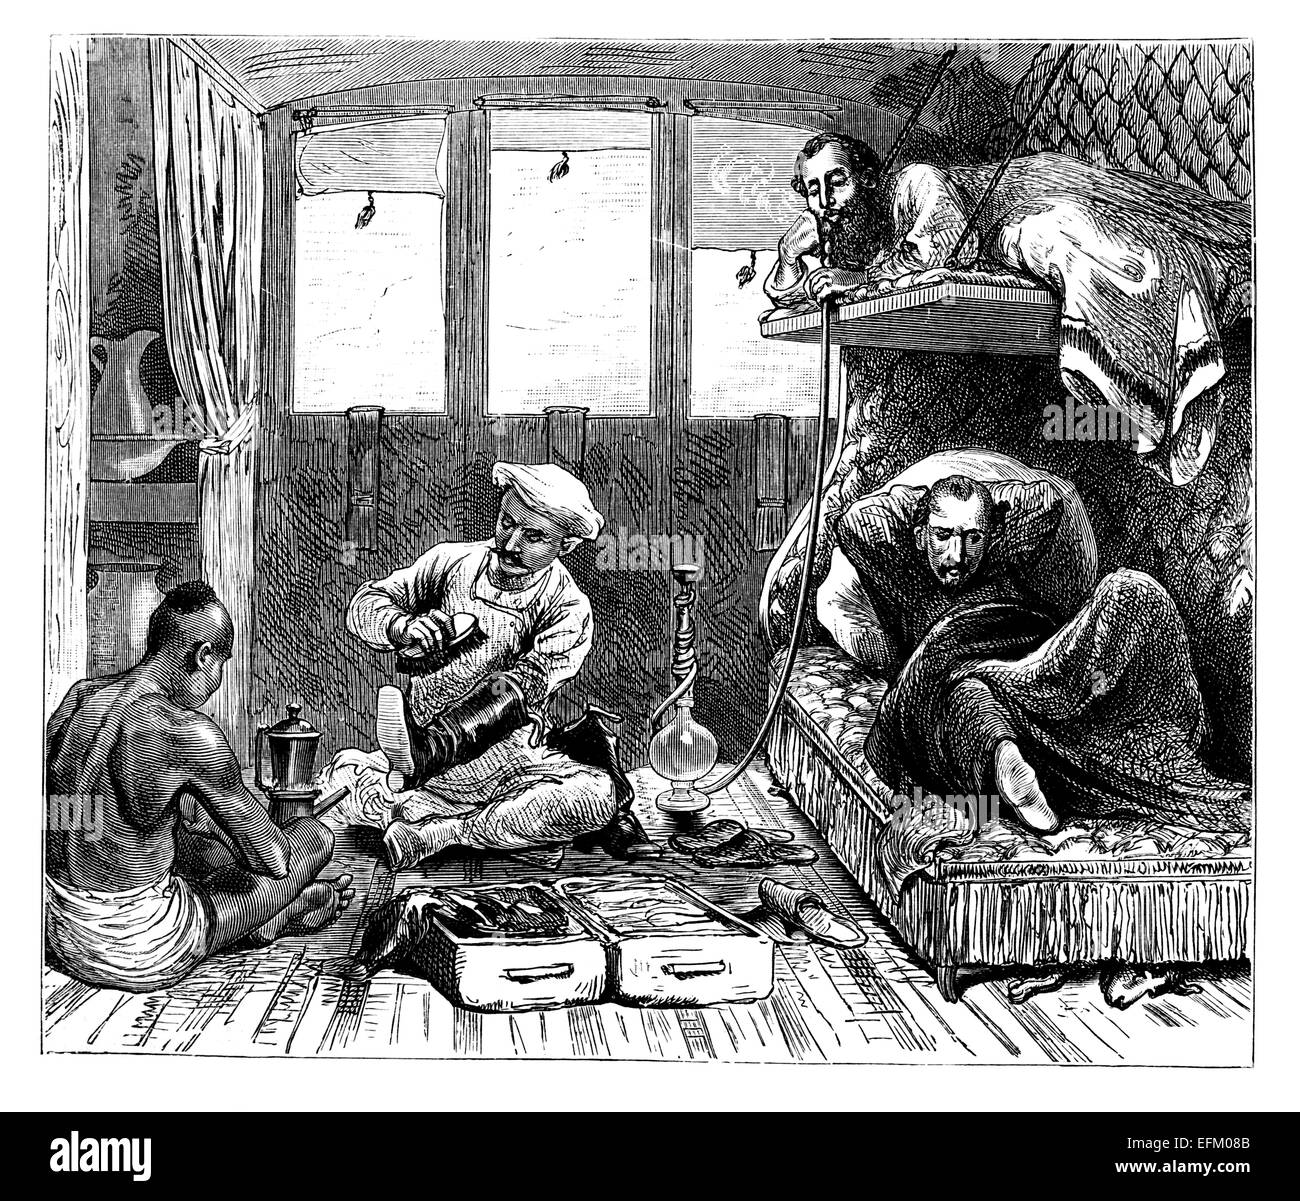 Victorian engraving of railway travellers, India. Digitally restored image from a mid-19th century Encyclopaedia. - Stock Image